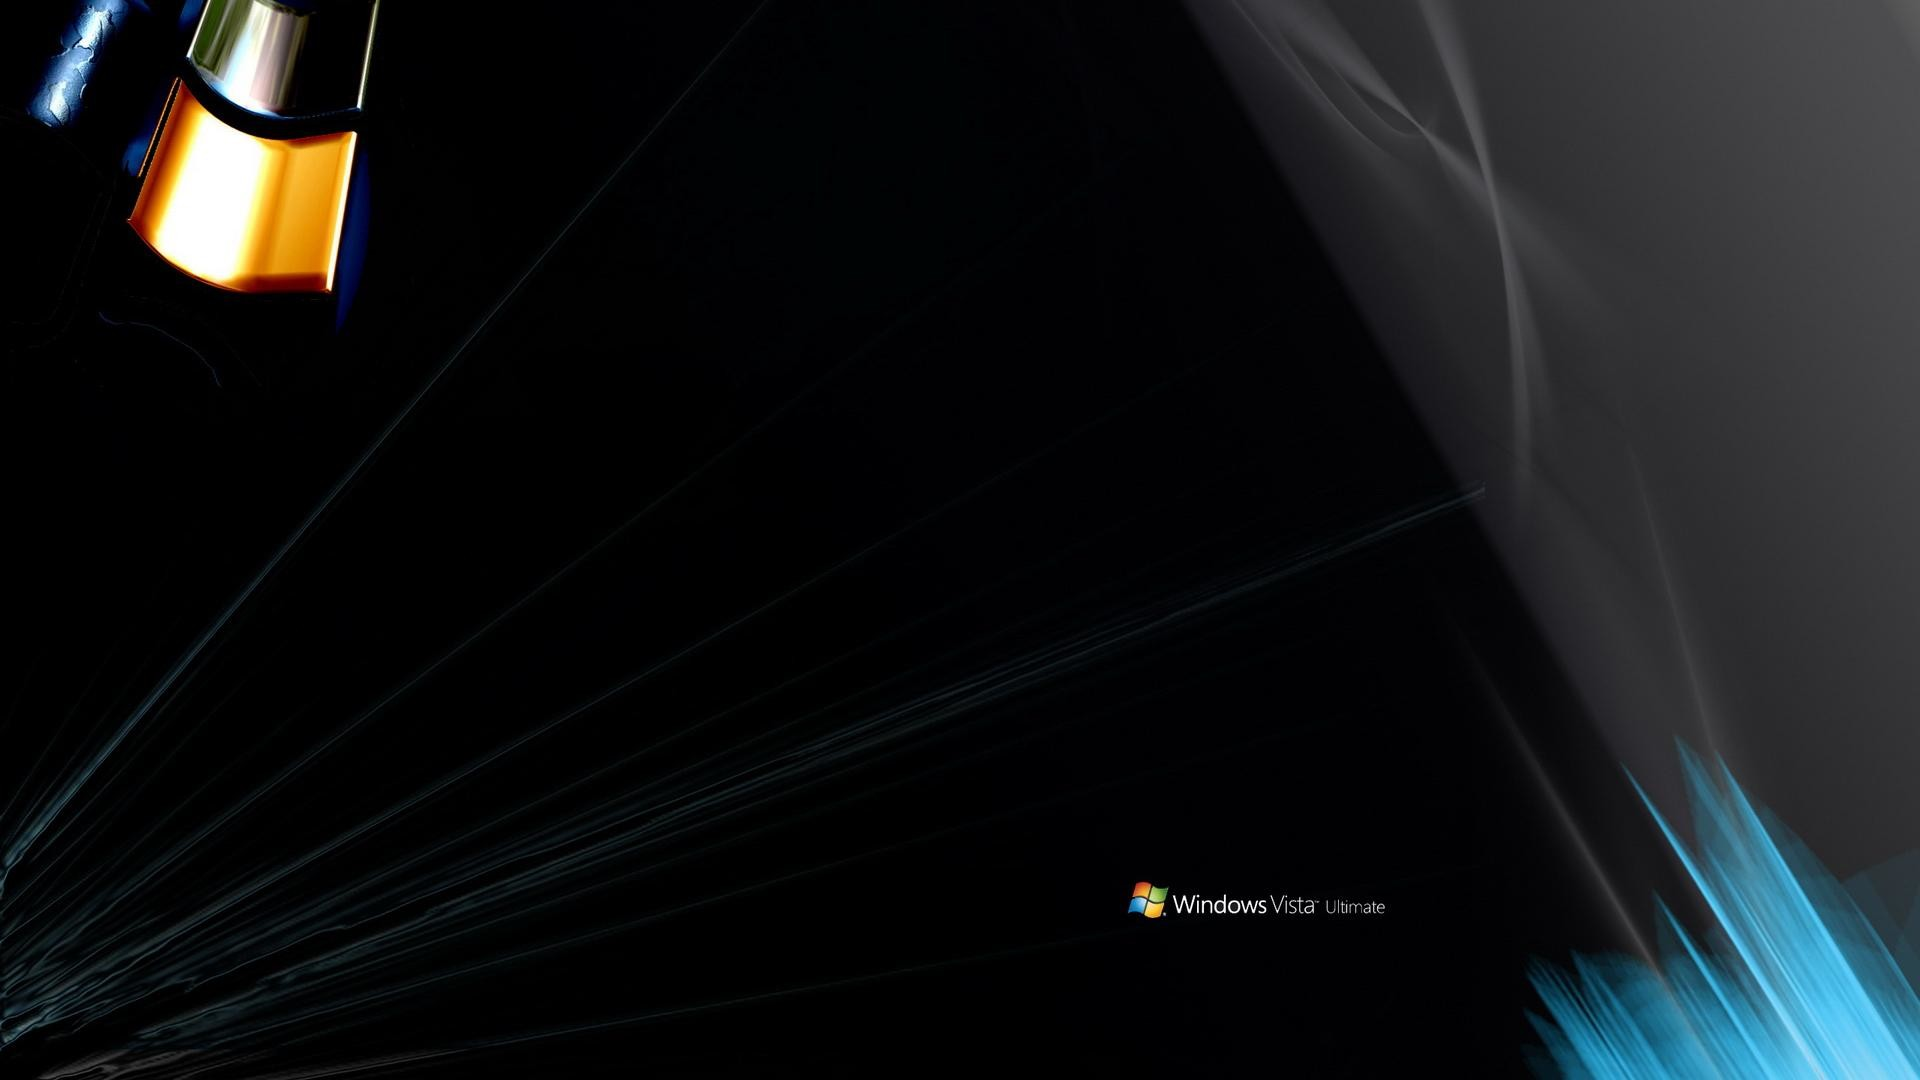 Windows 7 Ultimate Wallpaper 1280x800 64 images 1920x1080